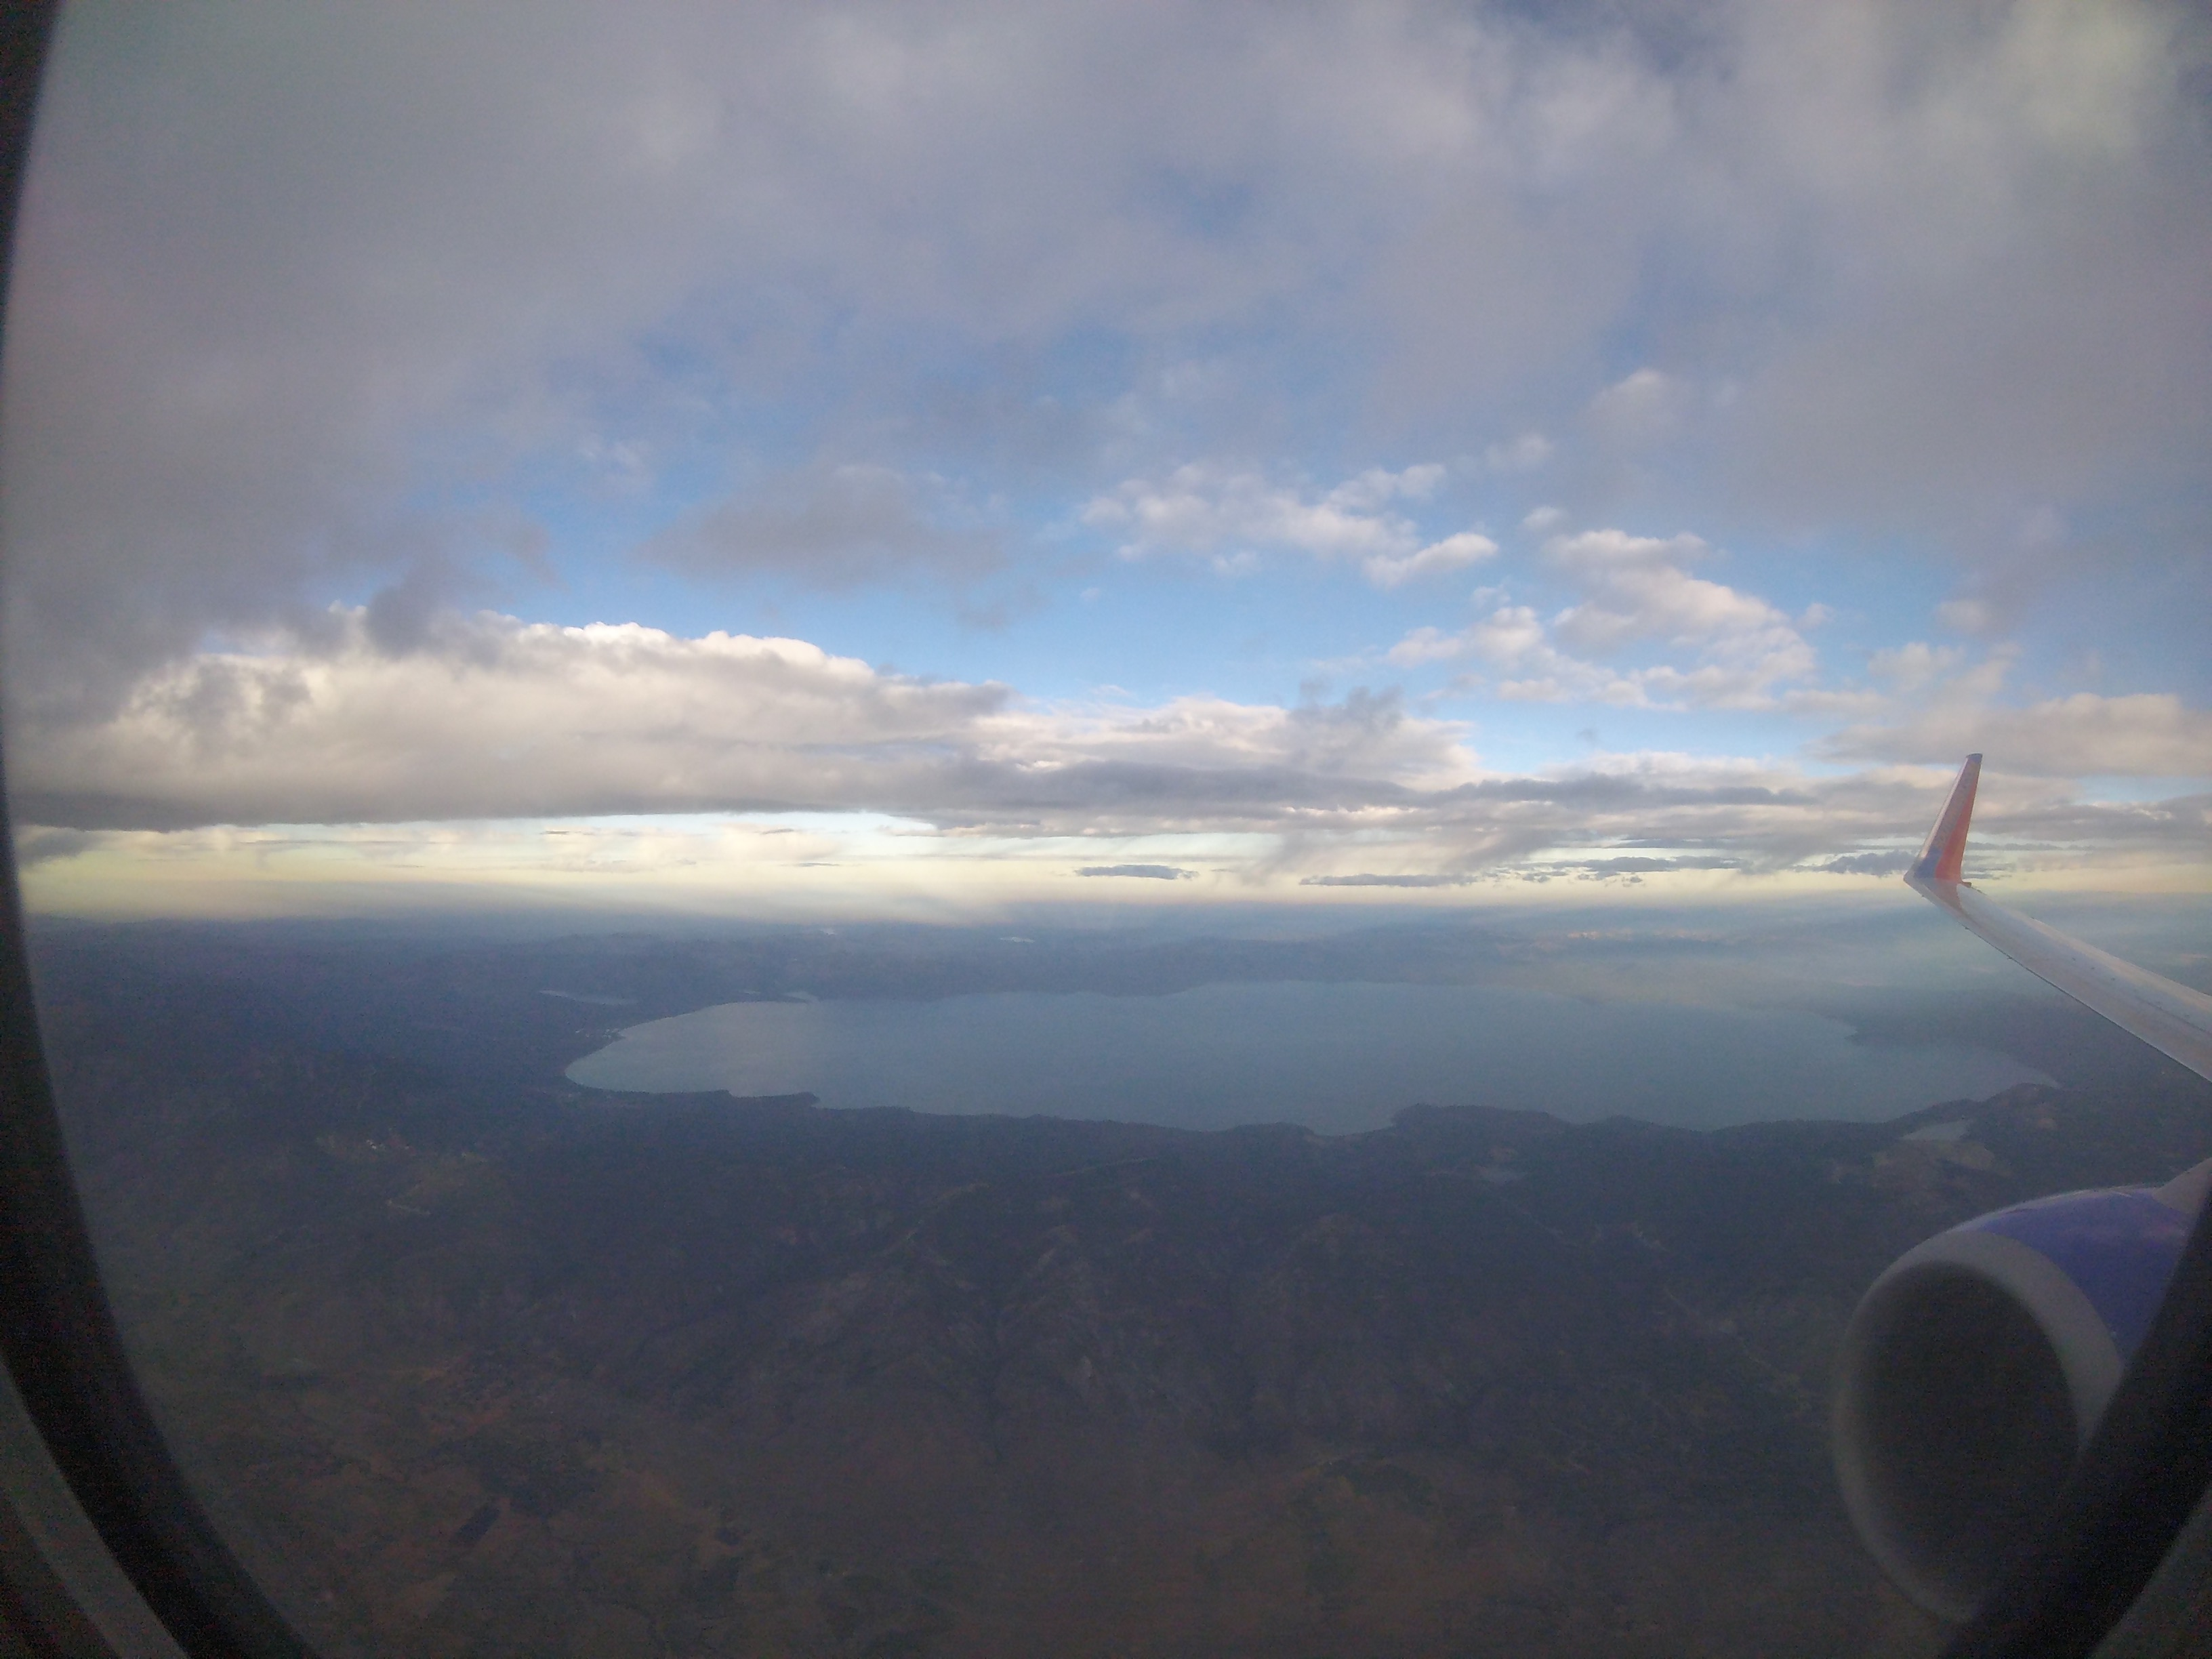 backpackers guide to water filtration - lake tahoe